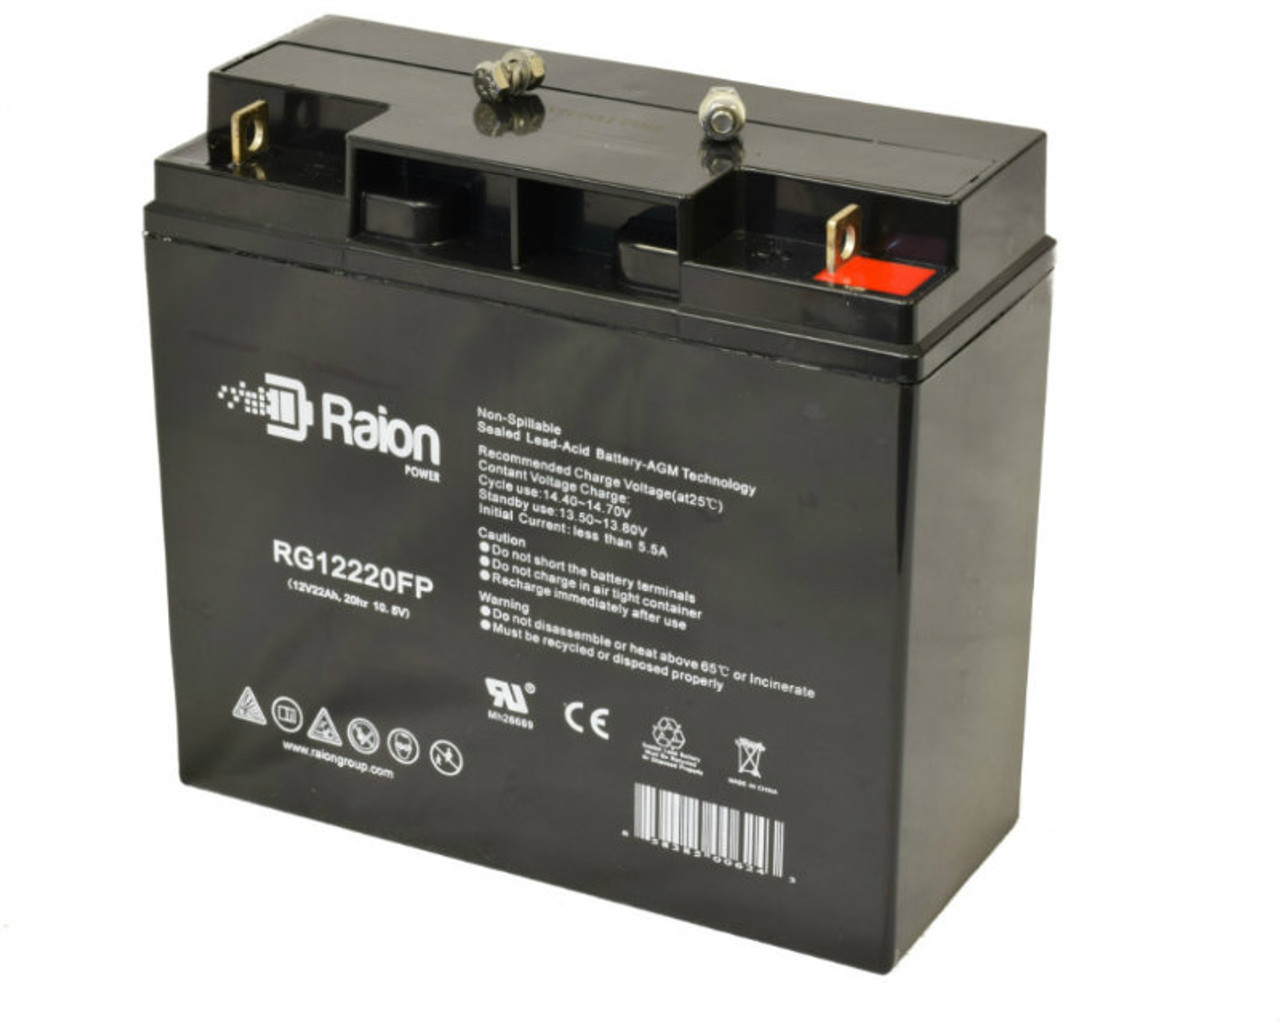 Raion Power RG12220FP Replacement Wheelchair Battery For IMC Heartway Comet P53 (1 Pack)